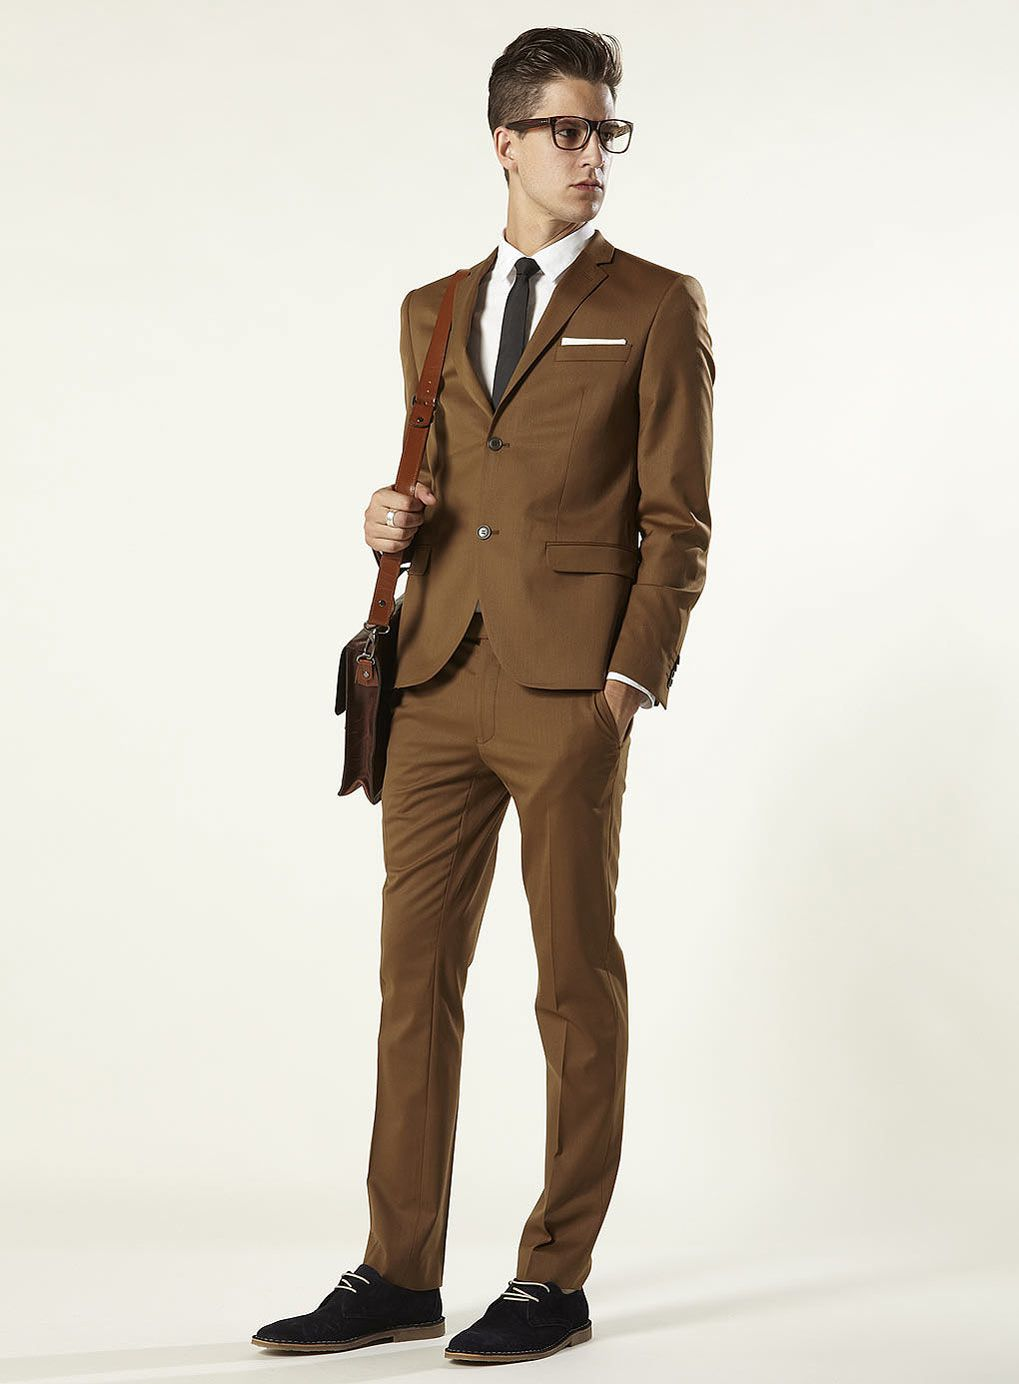 Topman - Fudge Brown Skinny Suit Currently unavailable… I must ...